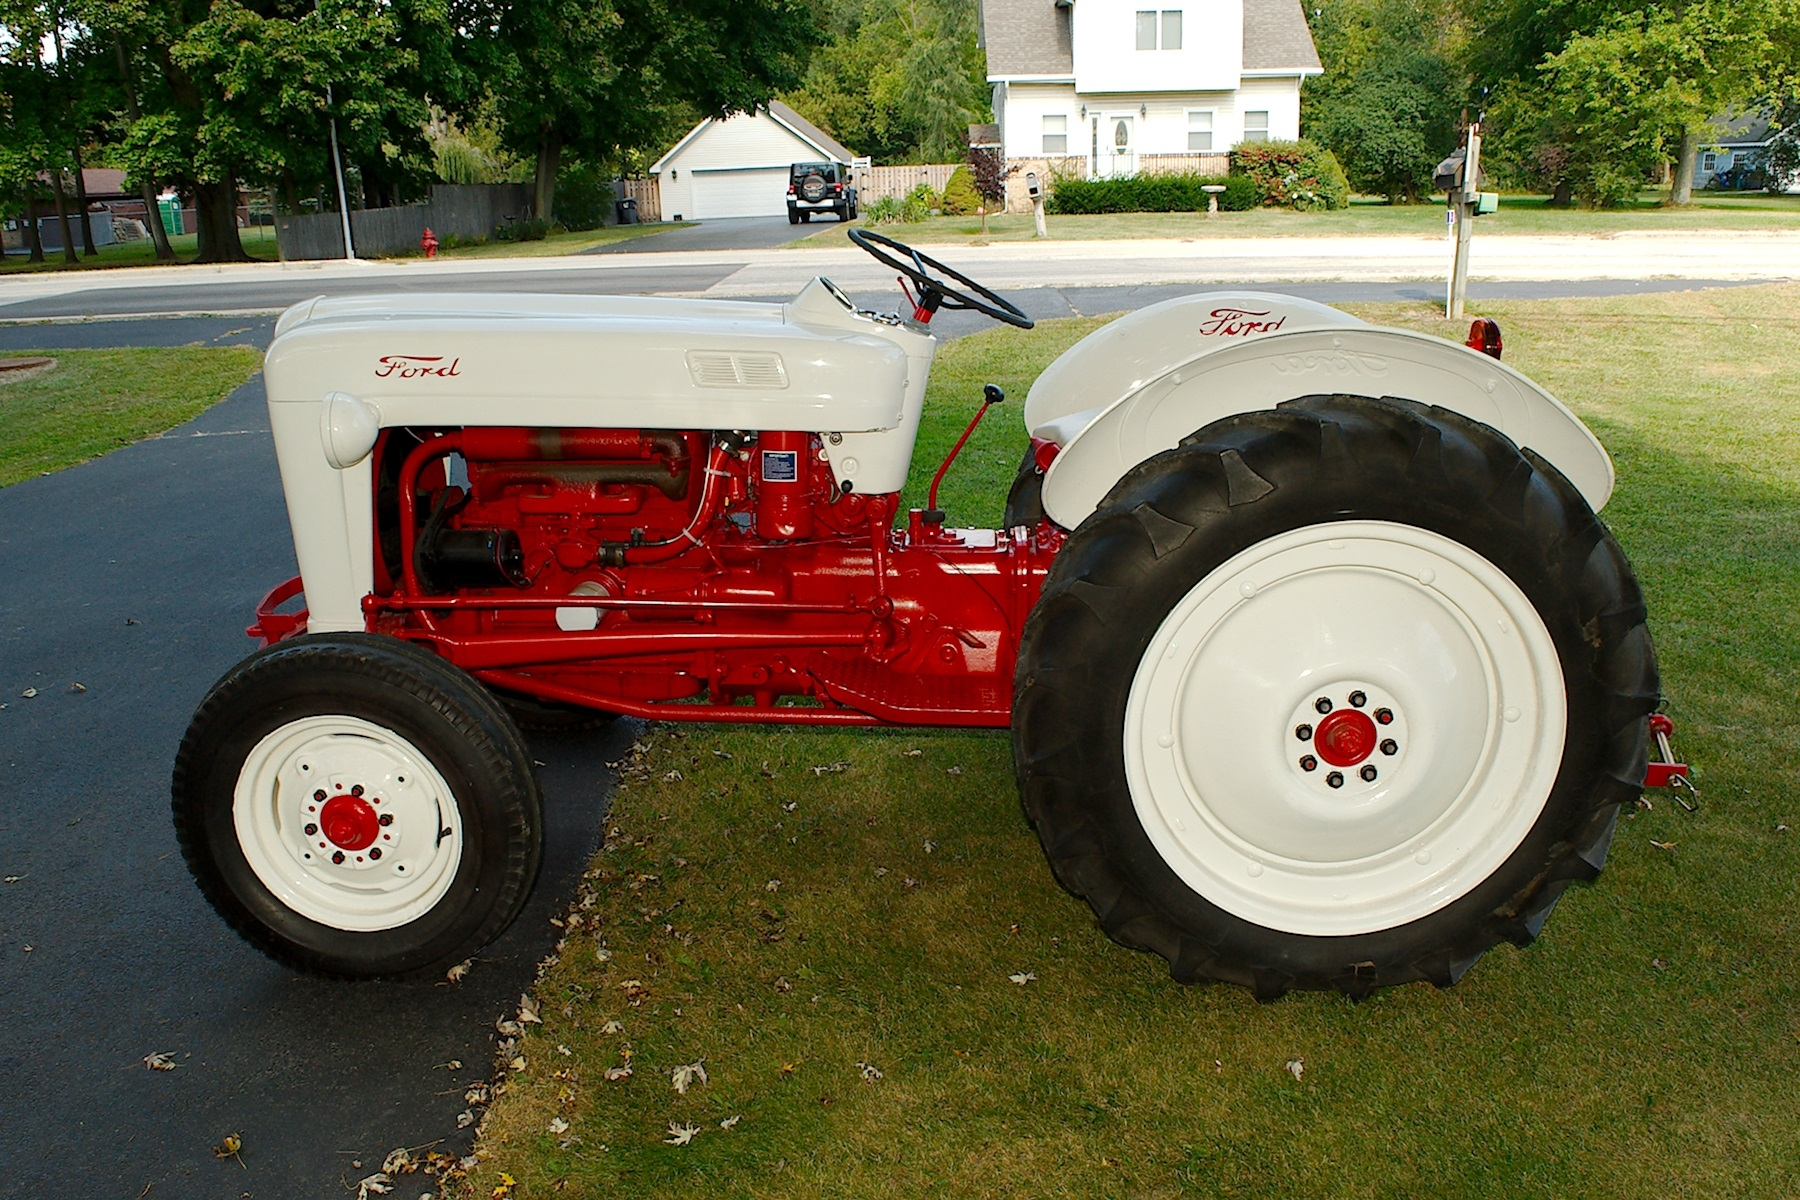 1953 Ford Golden Jubilee Antique Collectible Farm Tractor sale Antioch Zion Waukegan Lake County Illinois